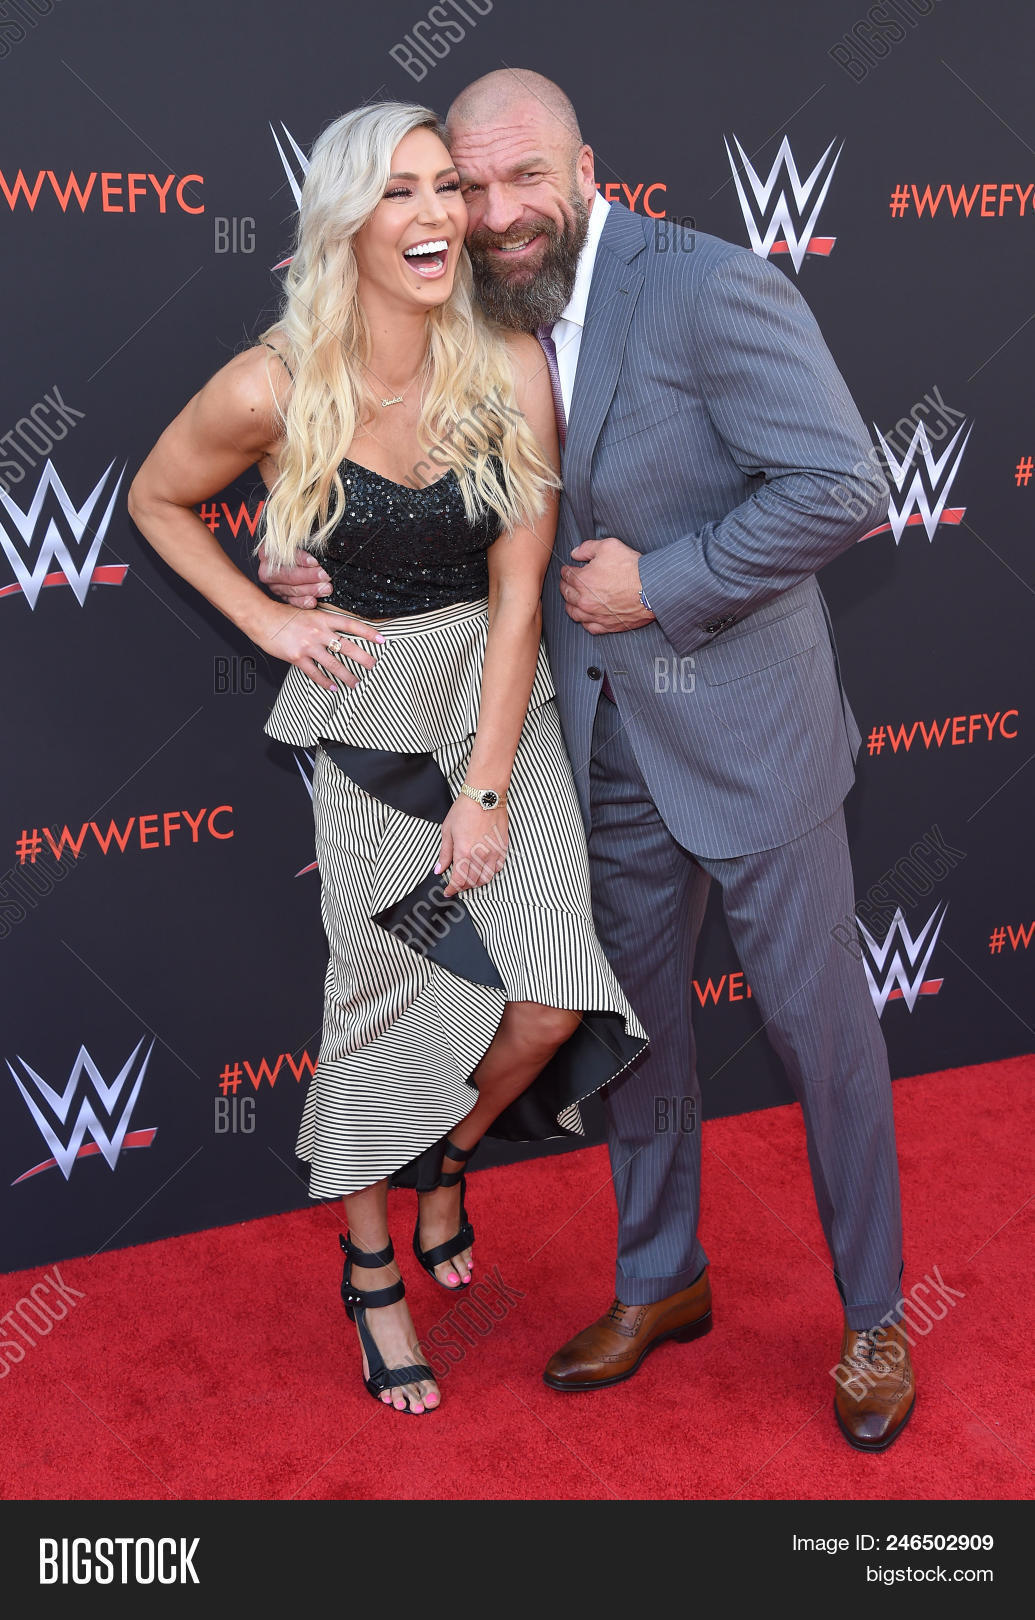 Wwe who dating is charlotte Charlotte Flair